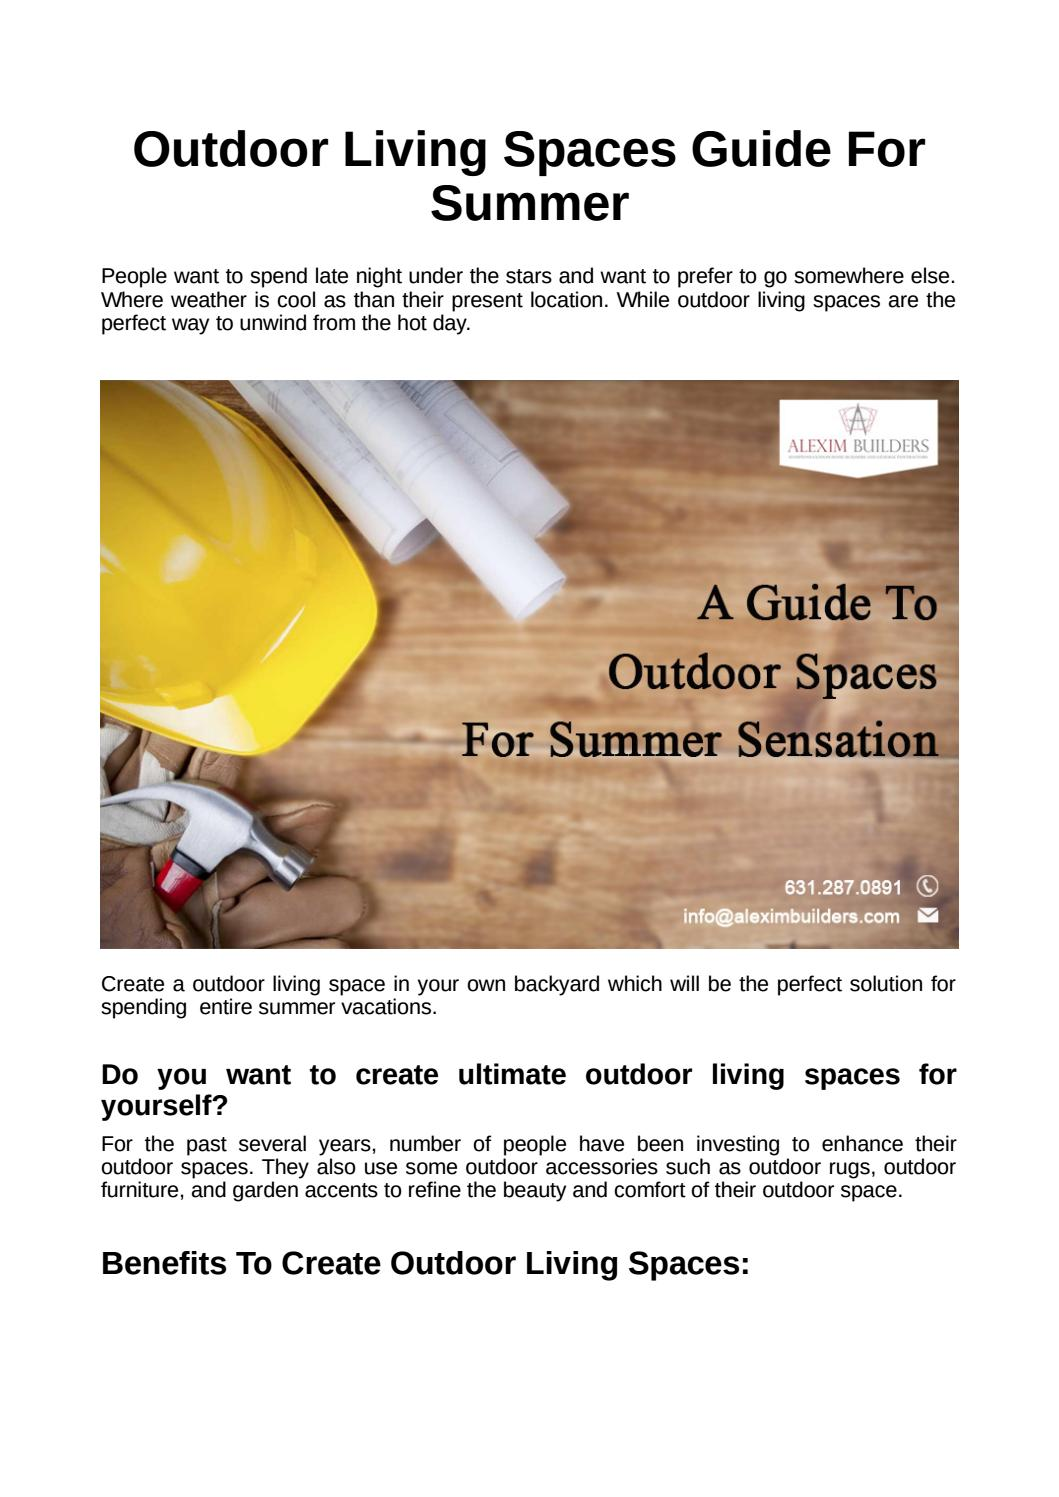 Outdoor Living Spaces Guide For Summer